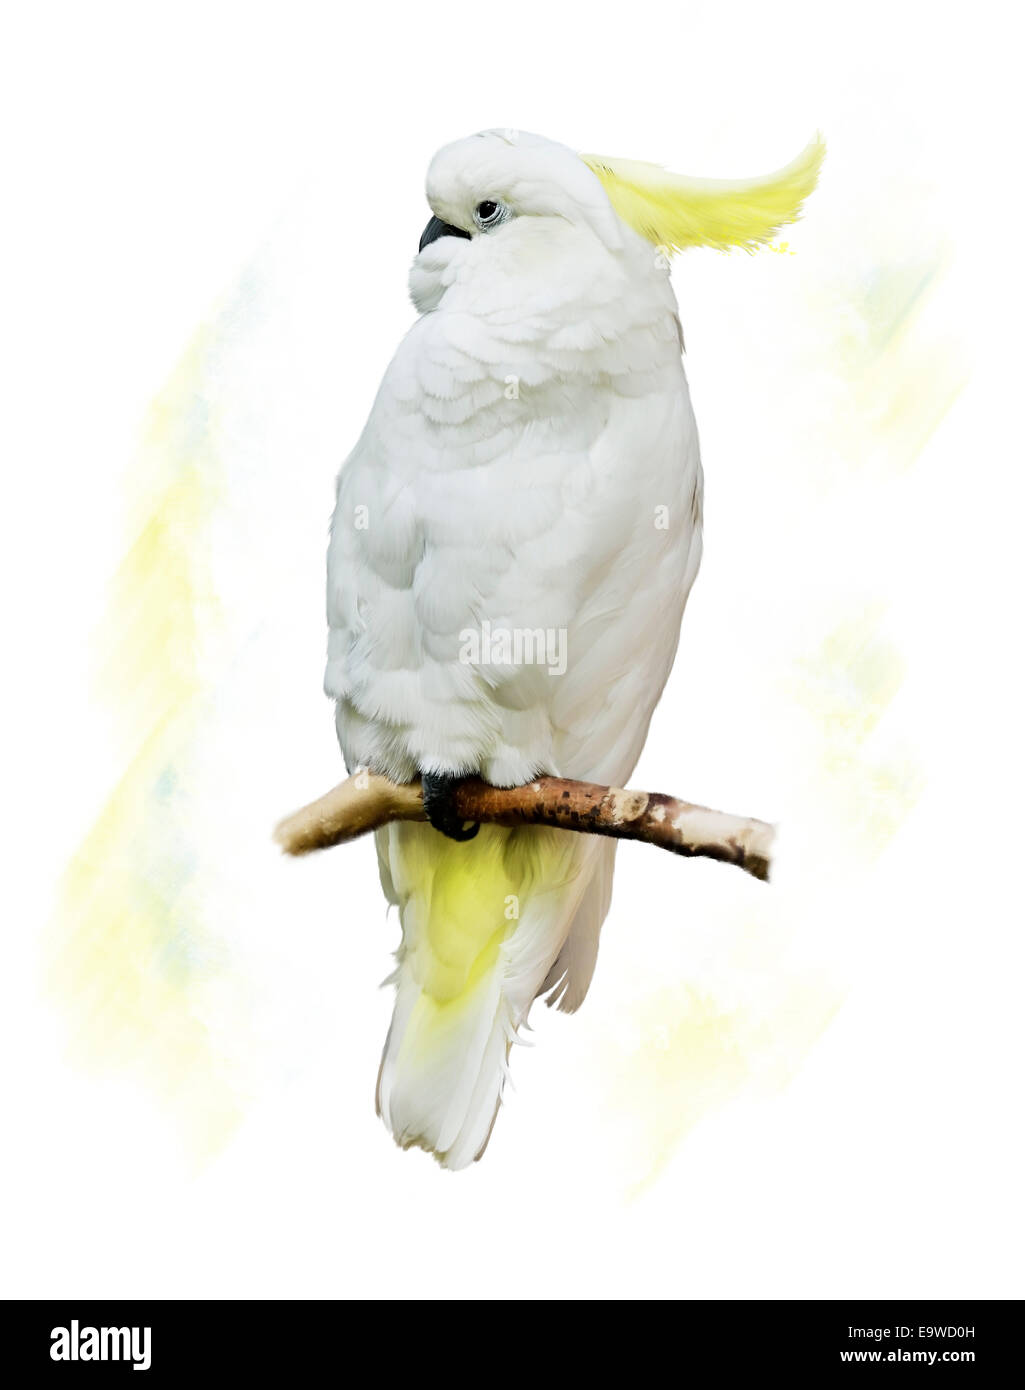 Digital Painting Of White Parrot - Stock Image